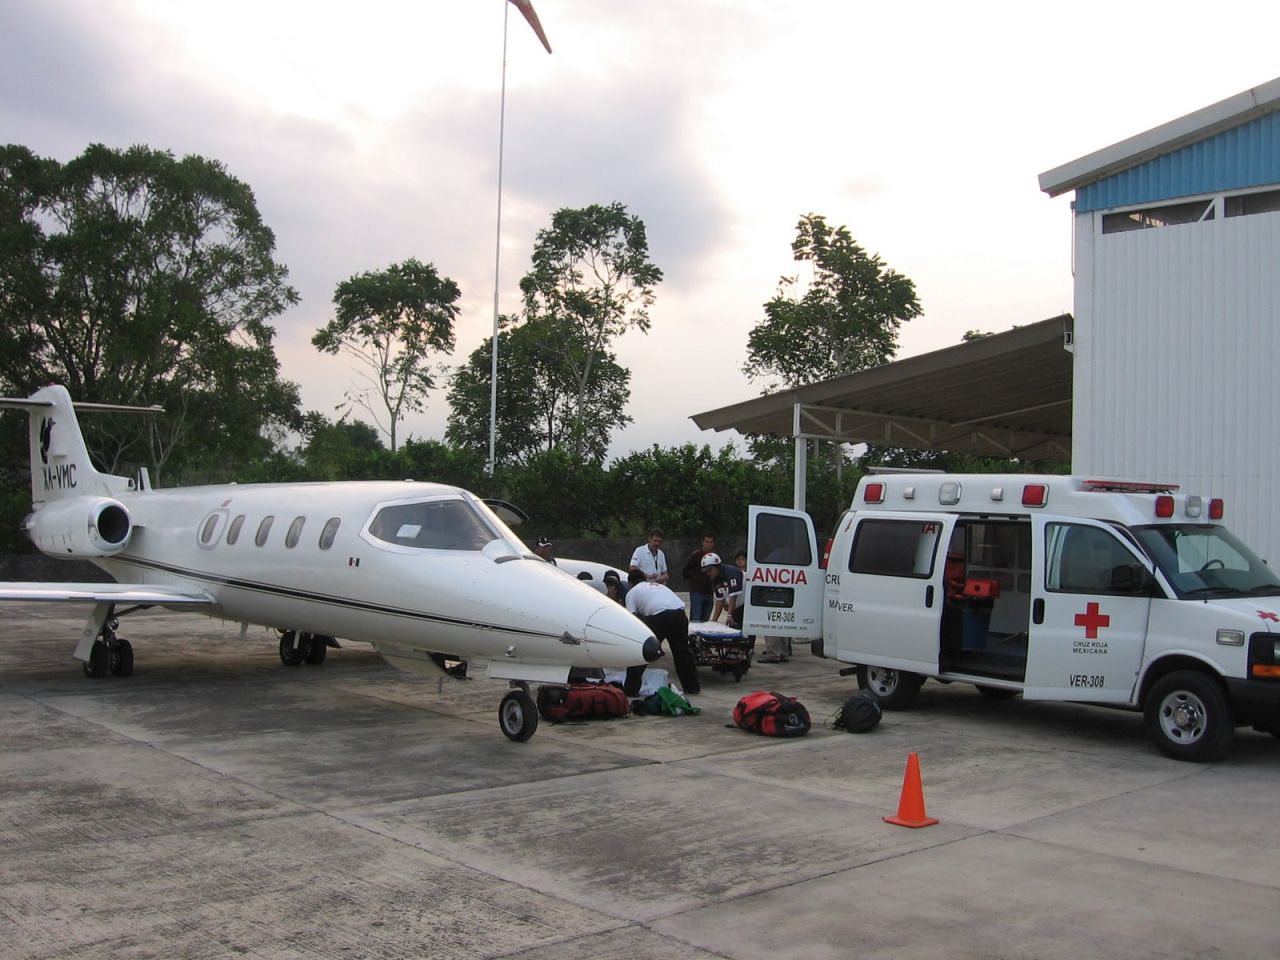 Air Ambulances Critical Help When You Need ItIf you or